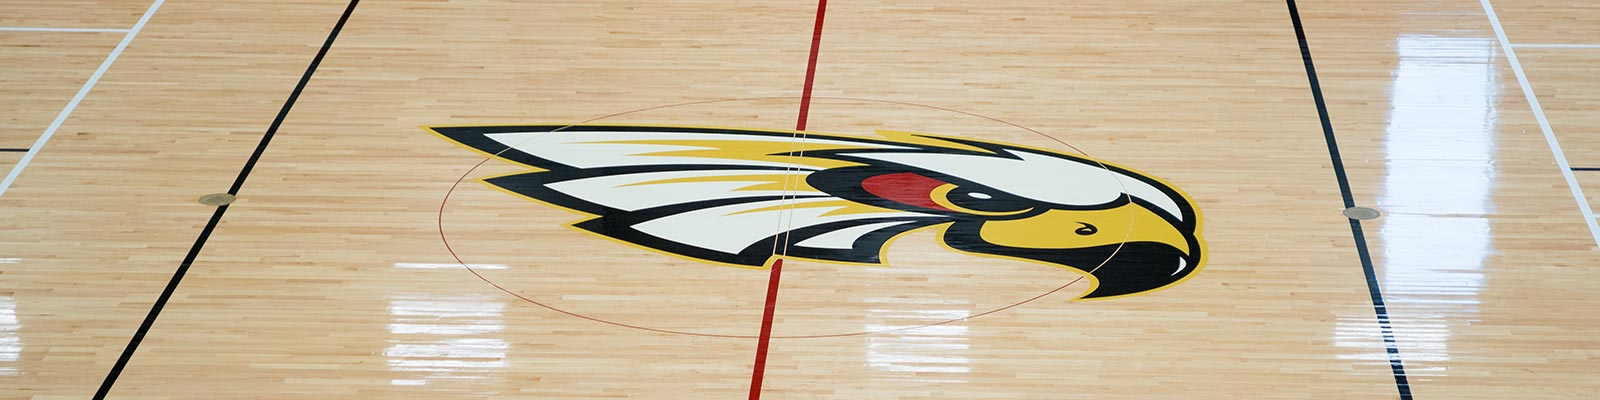 Kohawk logo on the gym floor